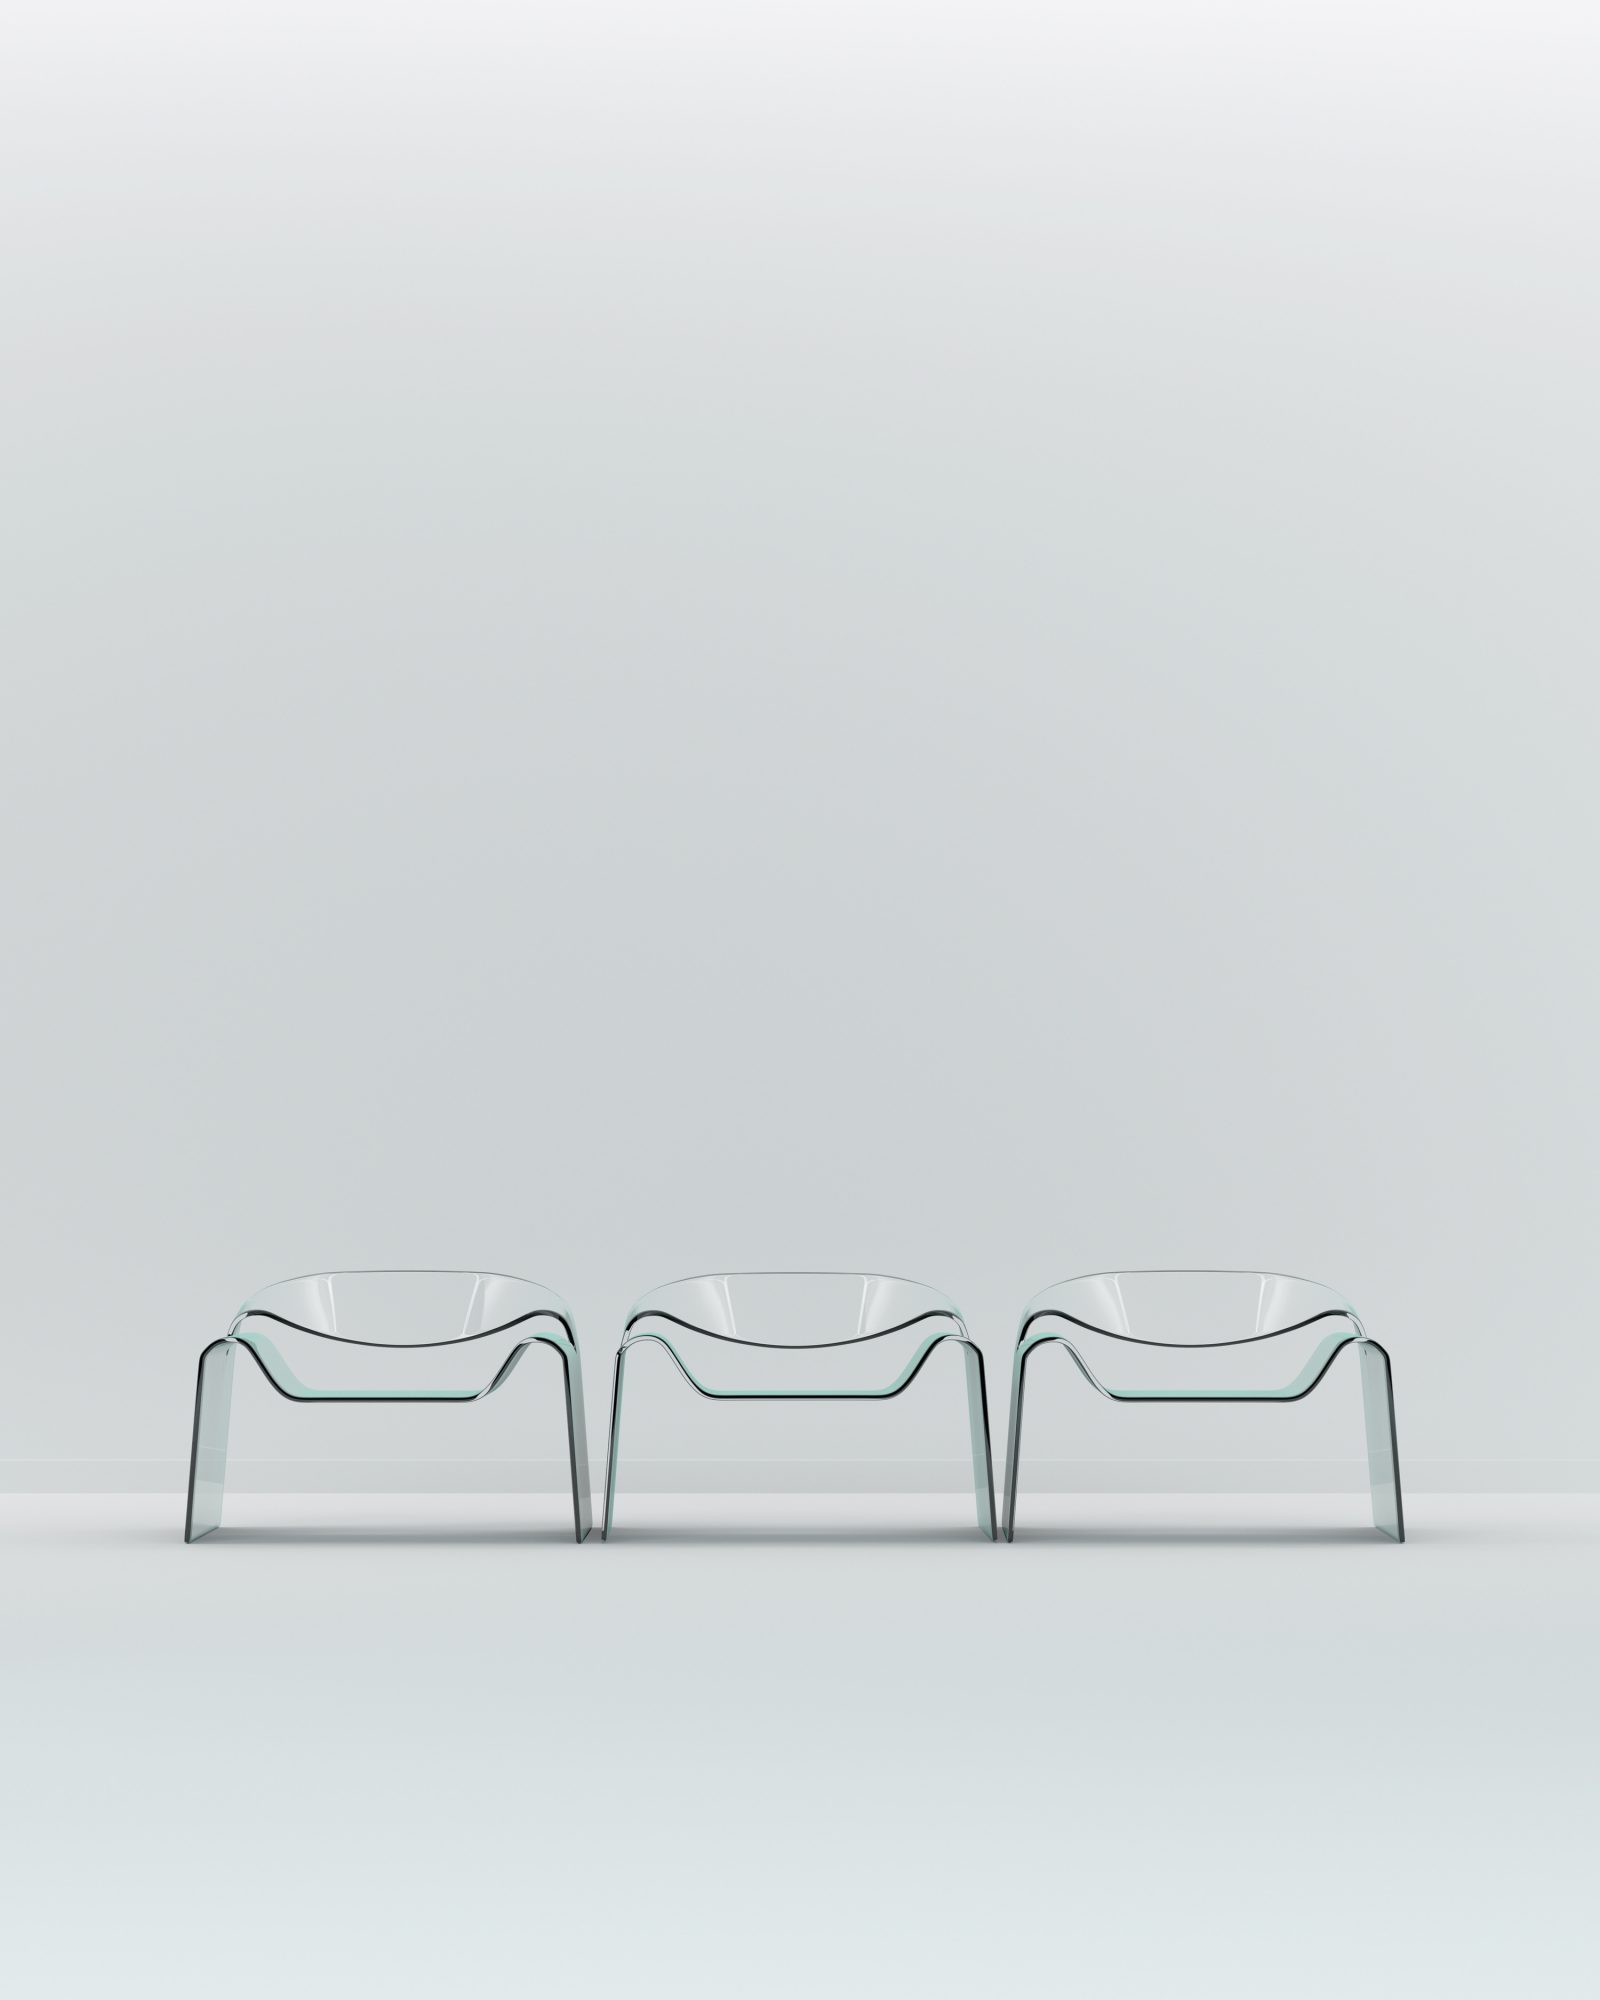 Glass Chair 3D Render